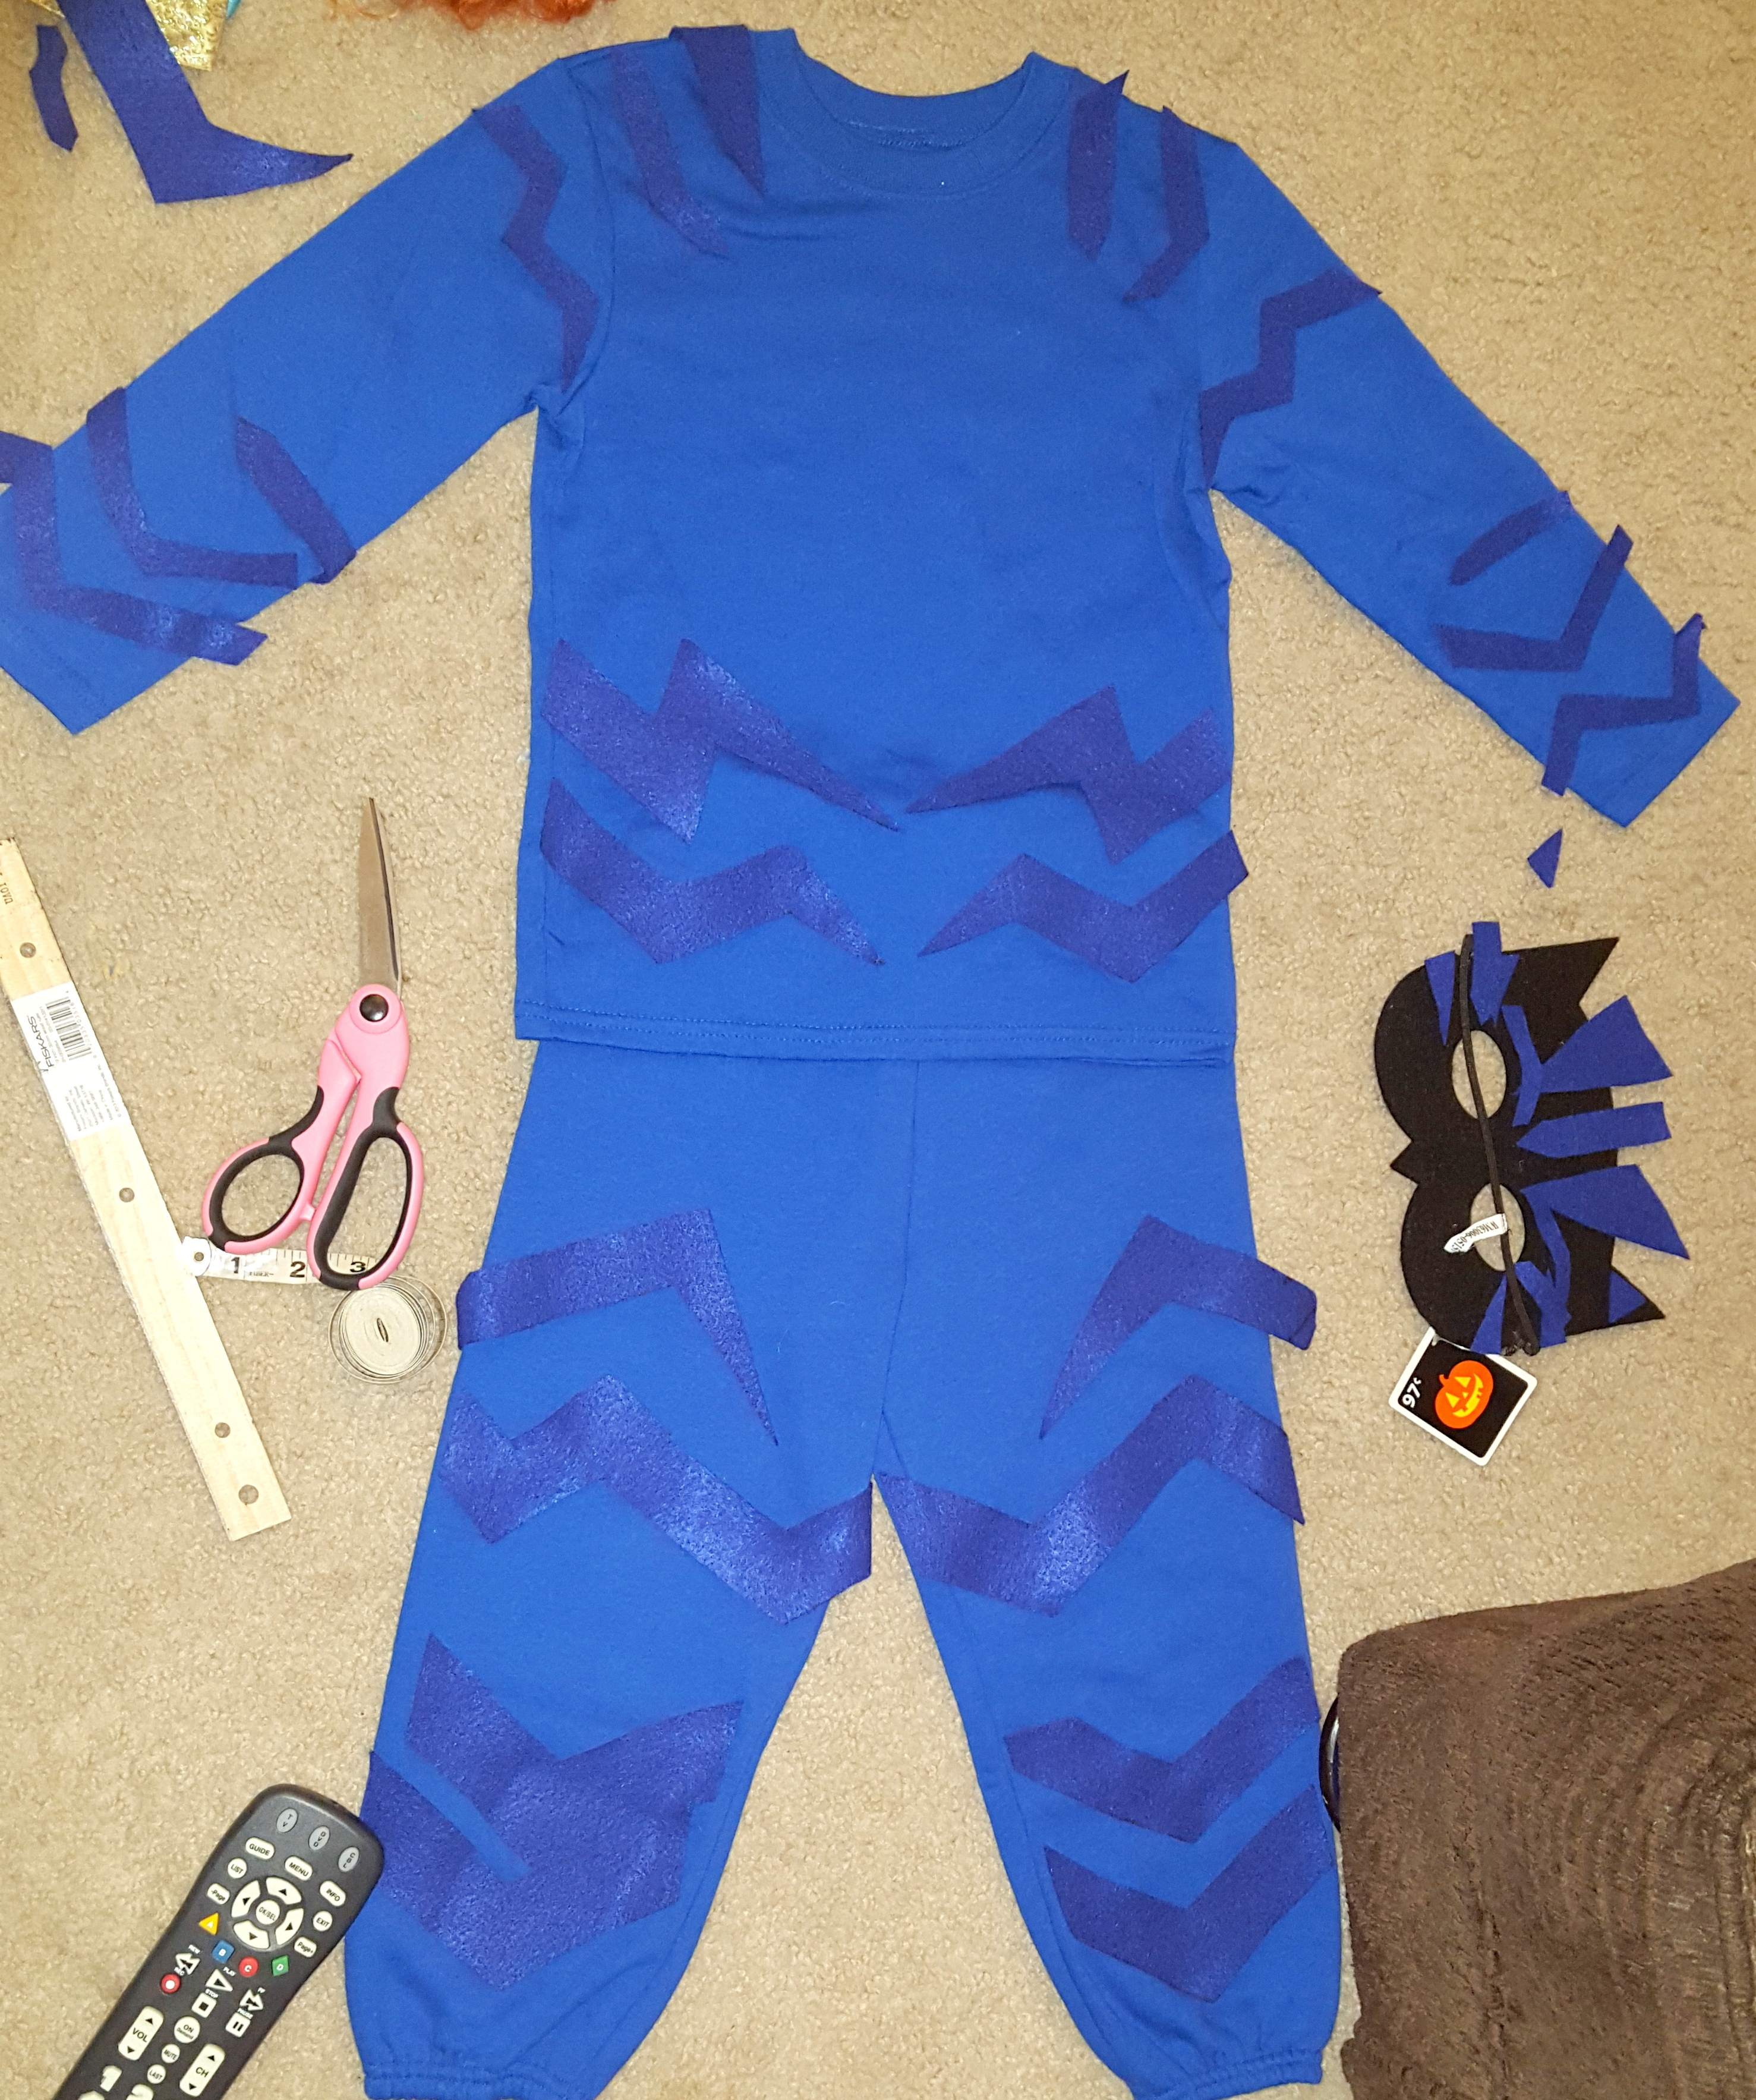 PJ Masks Catboy Costume Made With Crafting Felt